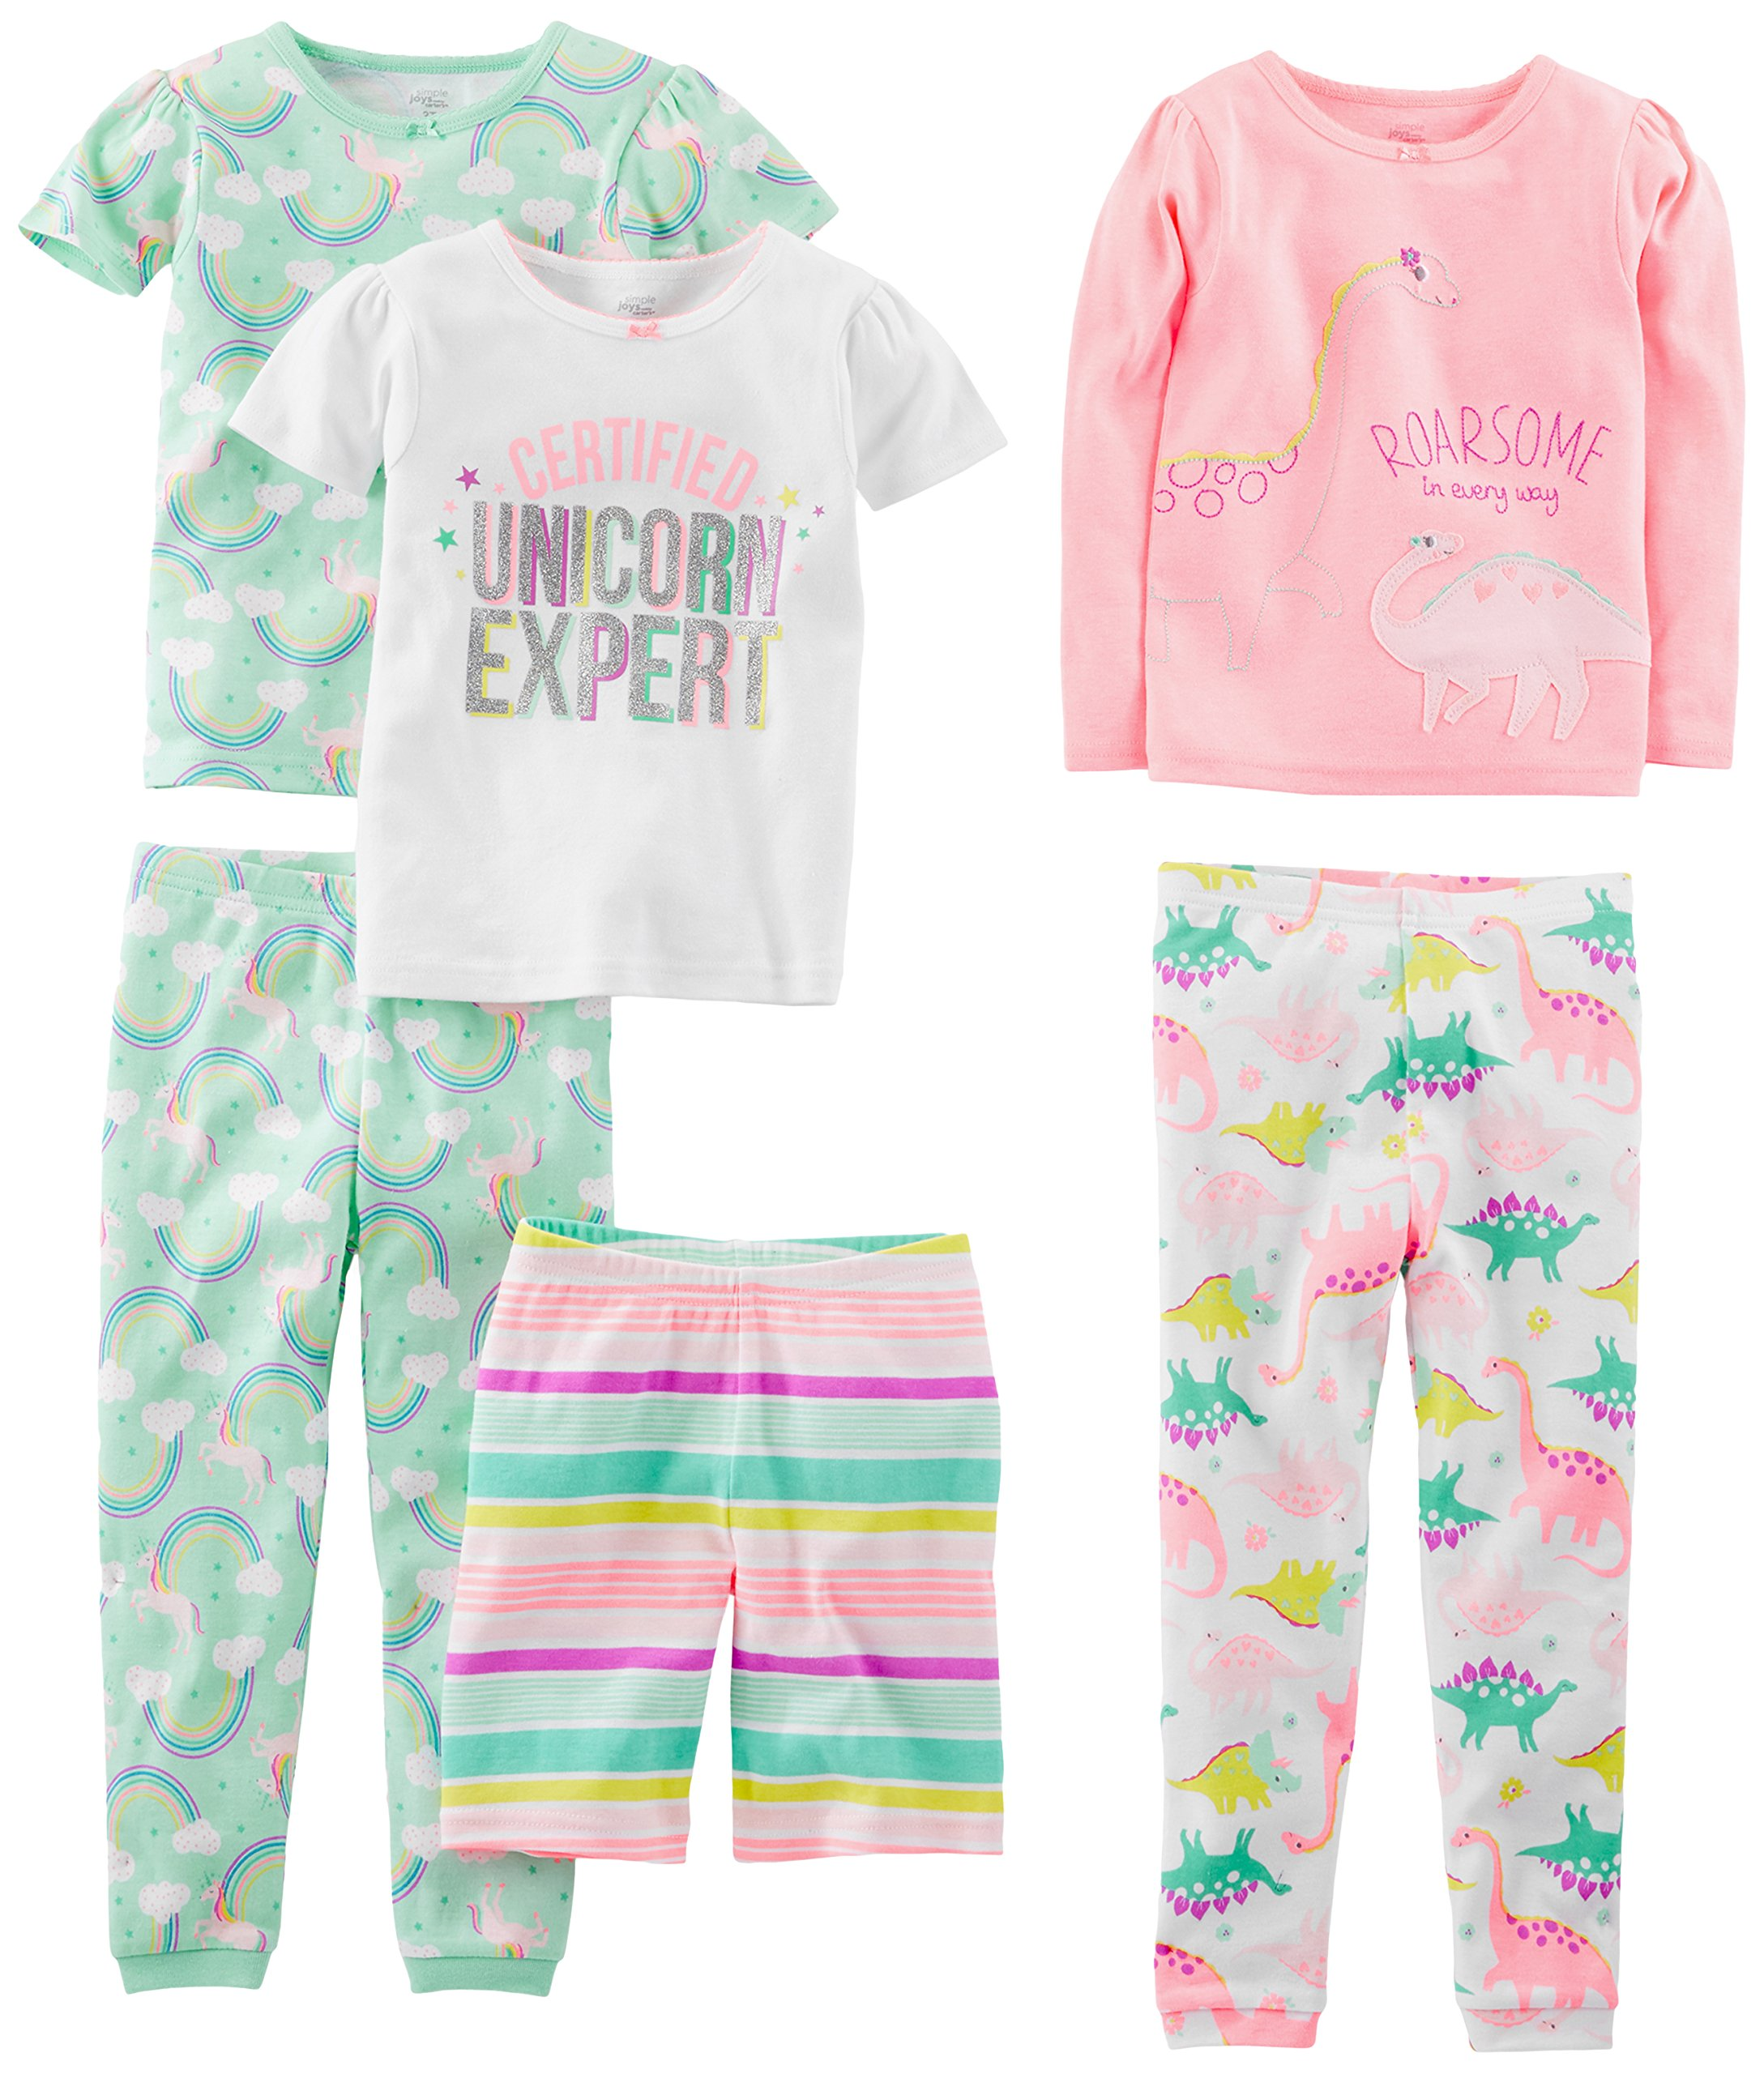 Simple Joys by Carter's Baby Girls' Toddler 6-Piece Snug Fit Cotton Pajama Set, Dinosaur, Rainbow,Unicorn, 4T